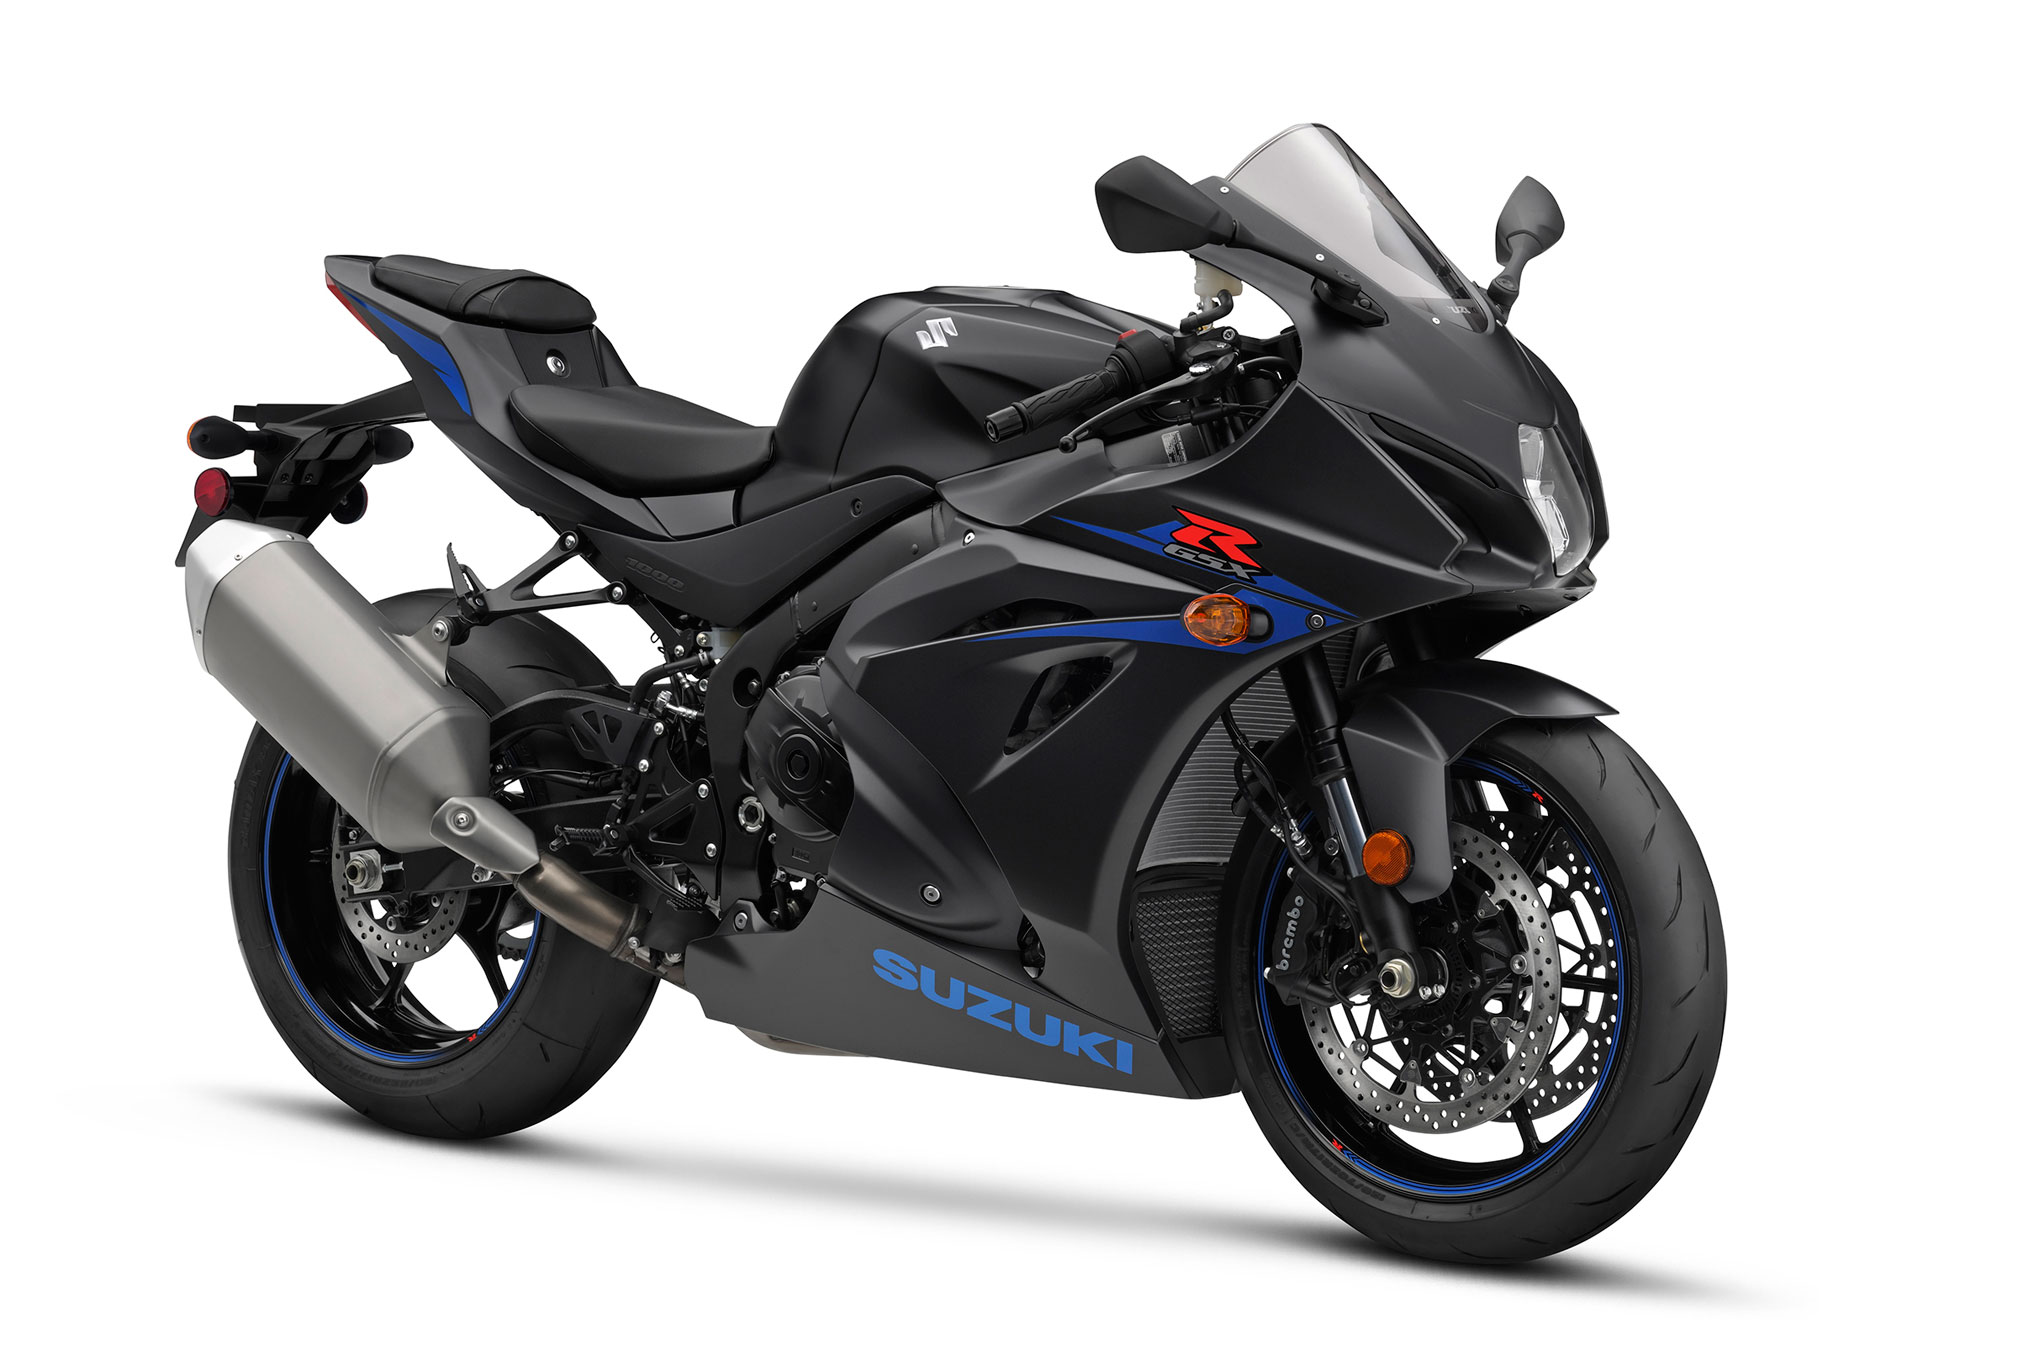 2018 suzuki gsx r1000 review totalmotorcycle. Black Bedroom Furniture Sets. Home Design Ideas